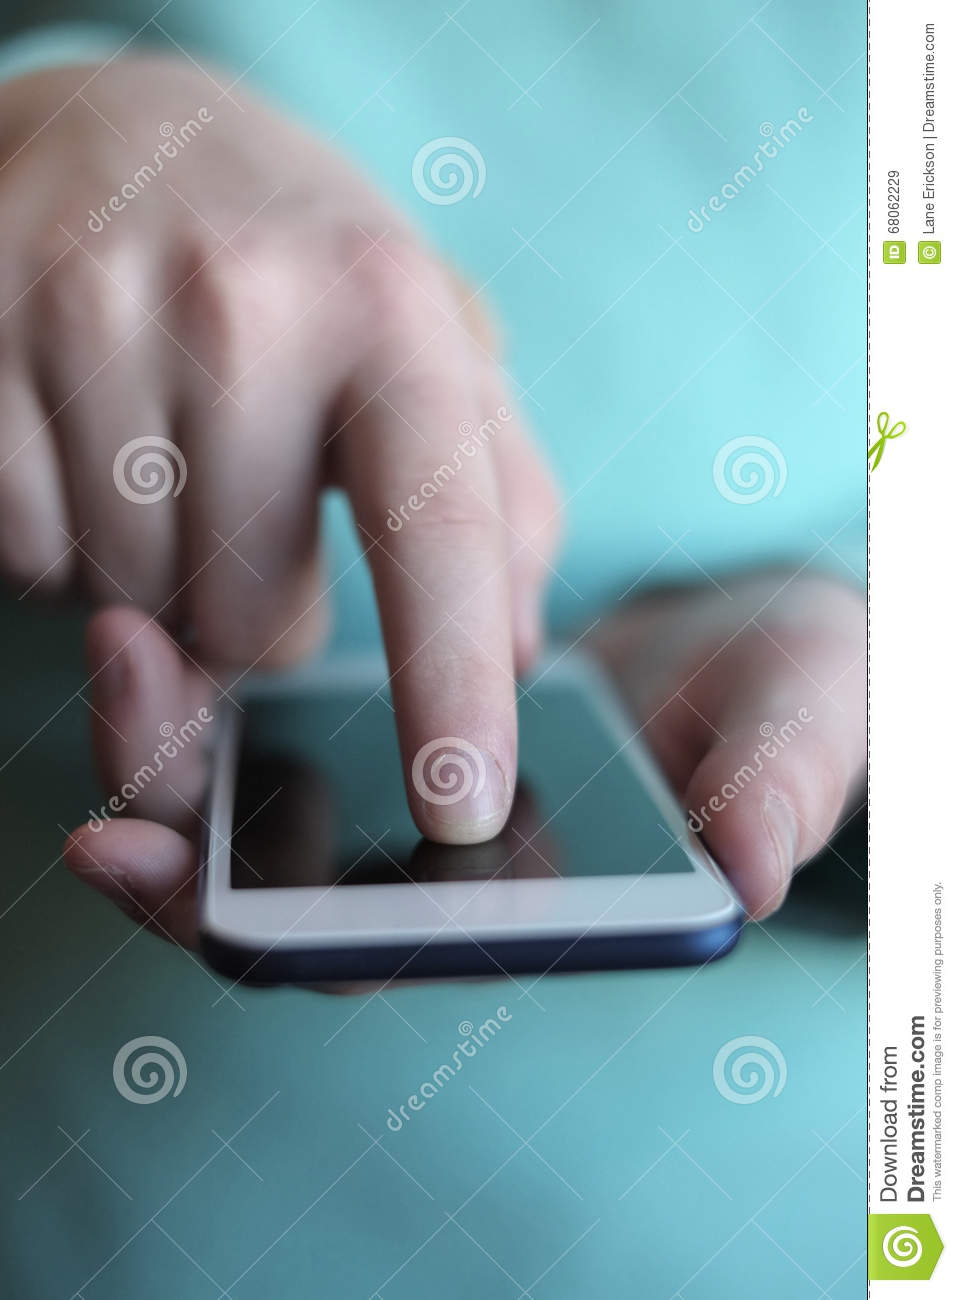 Using Smart Phone to Communicate Text